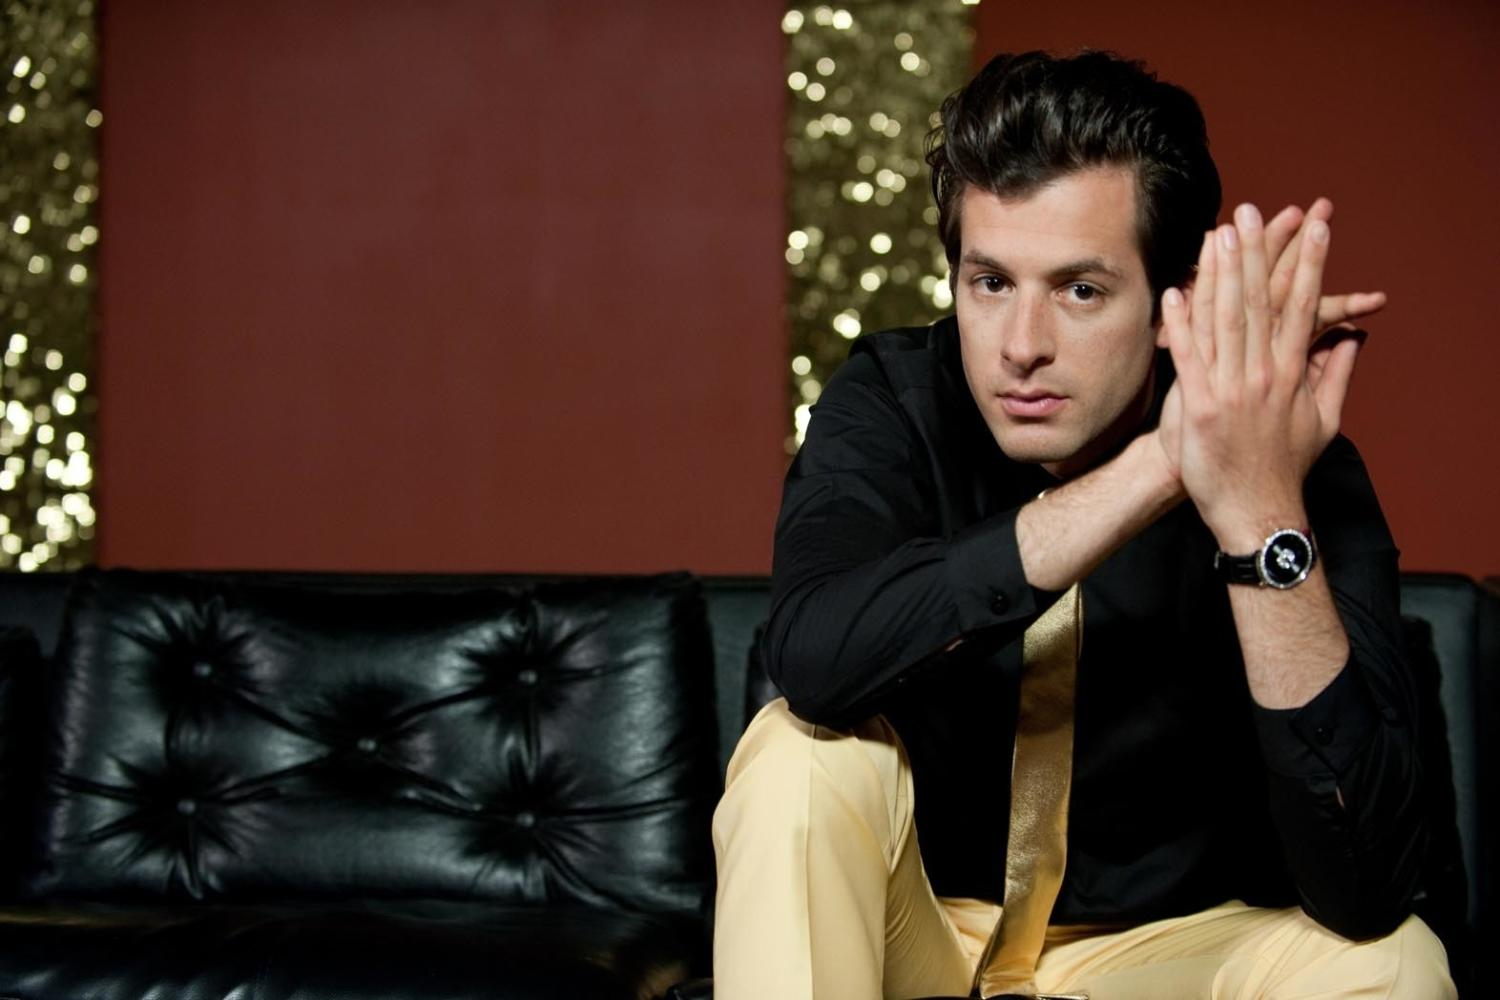 Hear Mark Ronson's new track 'Pieces Of Us' featuring King Princess